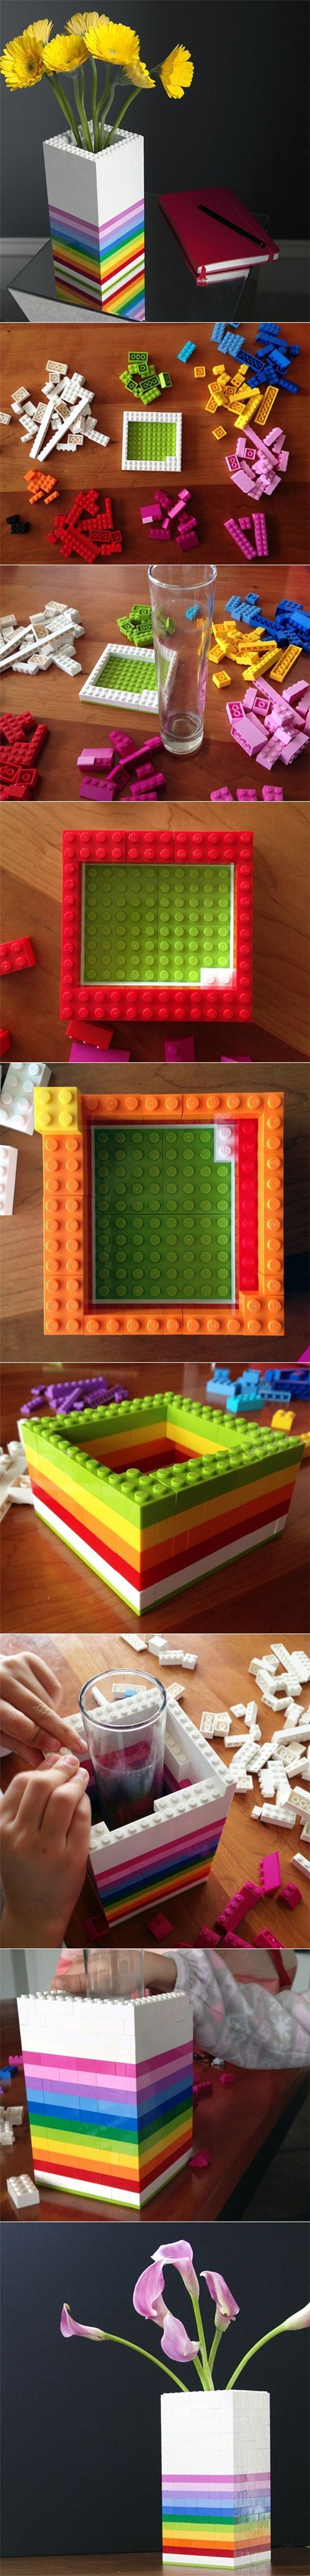 DIY Lego Vase....I don't think it has to be this complicated! Haha! But the idea is cute: